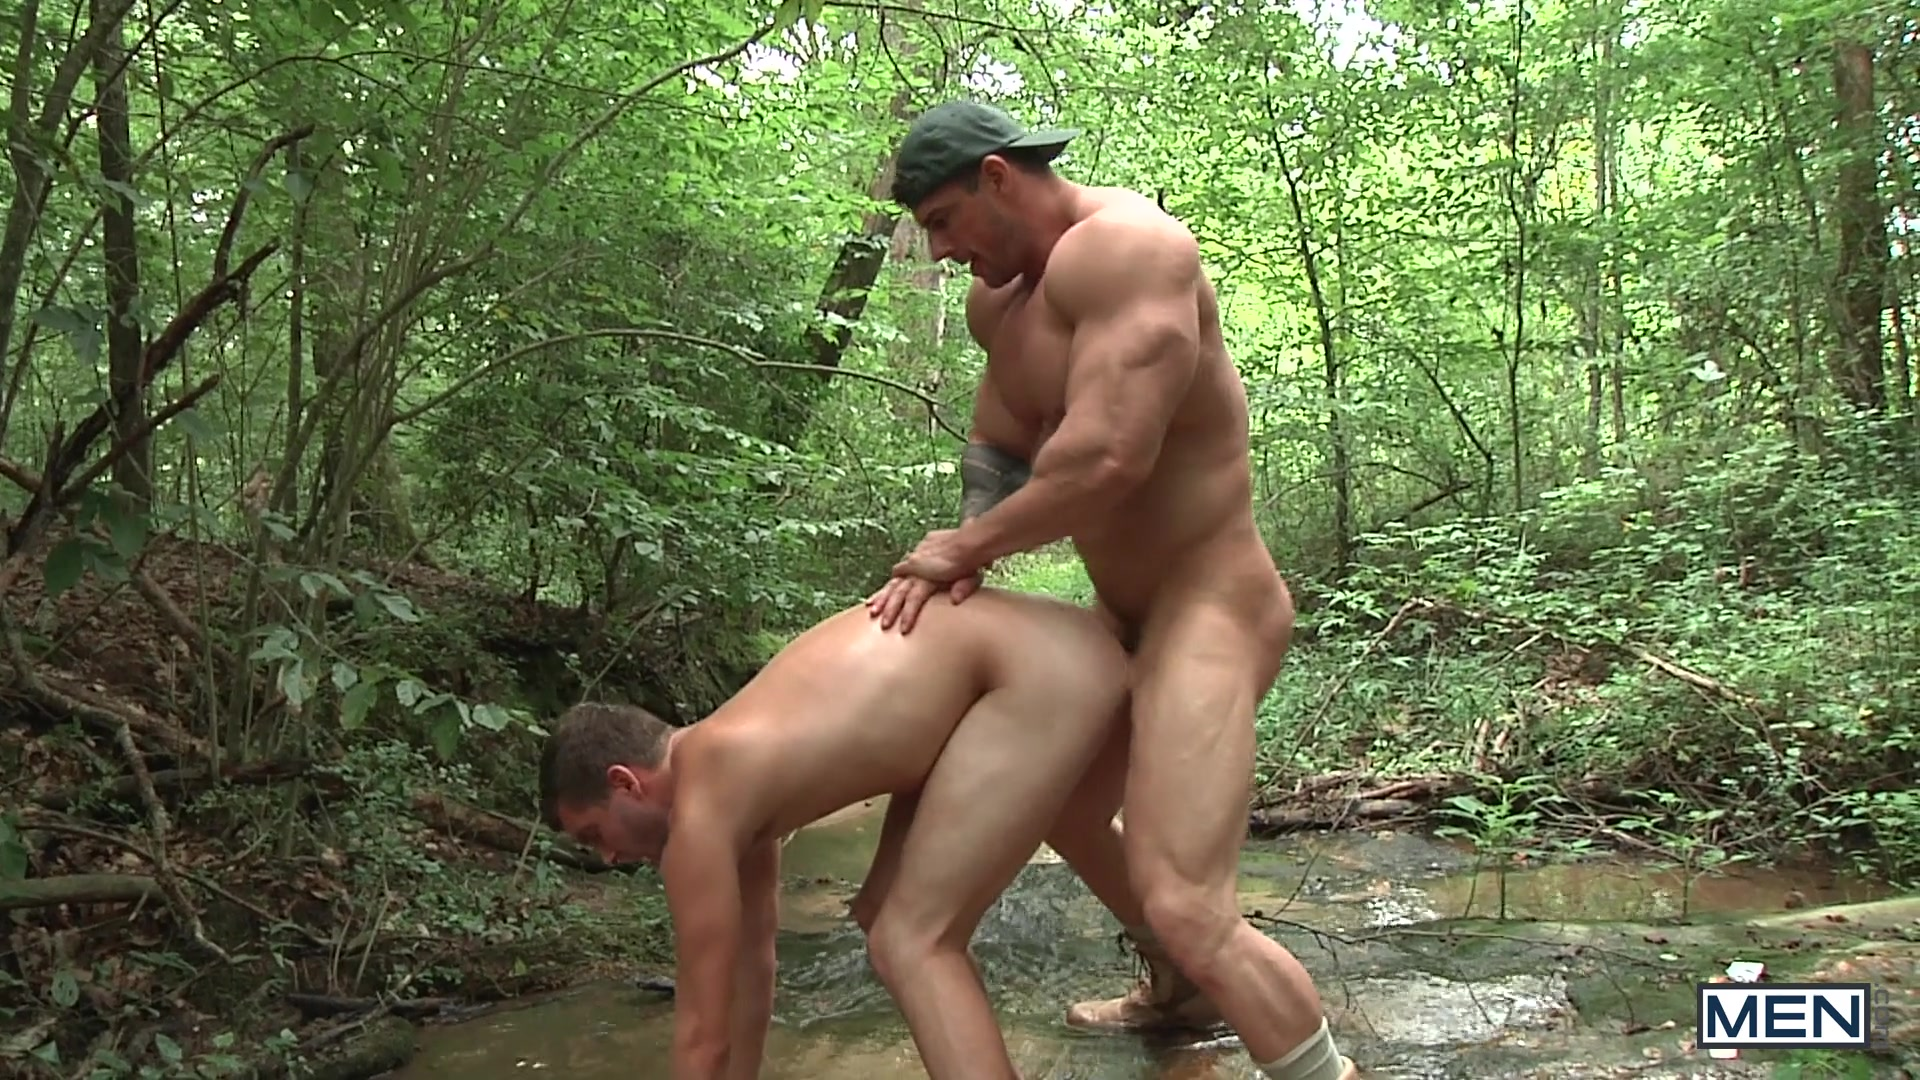 Watch Scouts Part 2 –  Zeb Atlas And Jack Radley – Bdas – Big Dicks At School (MEN.COM) Gay Porn Tube Videos Gifs And Free XXX HD Sex Movies Photos Online